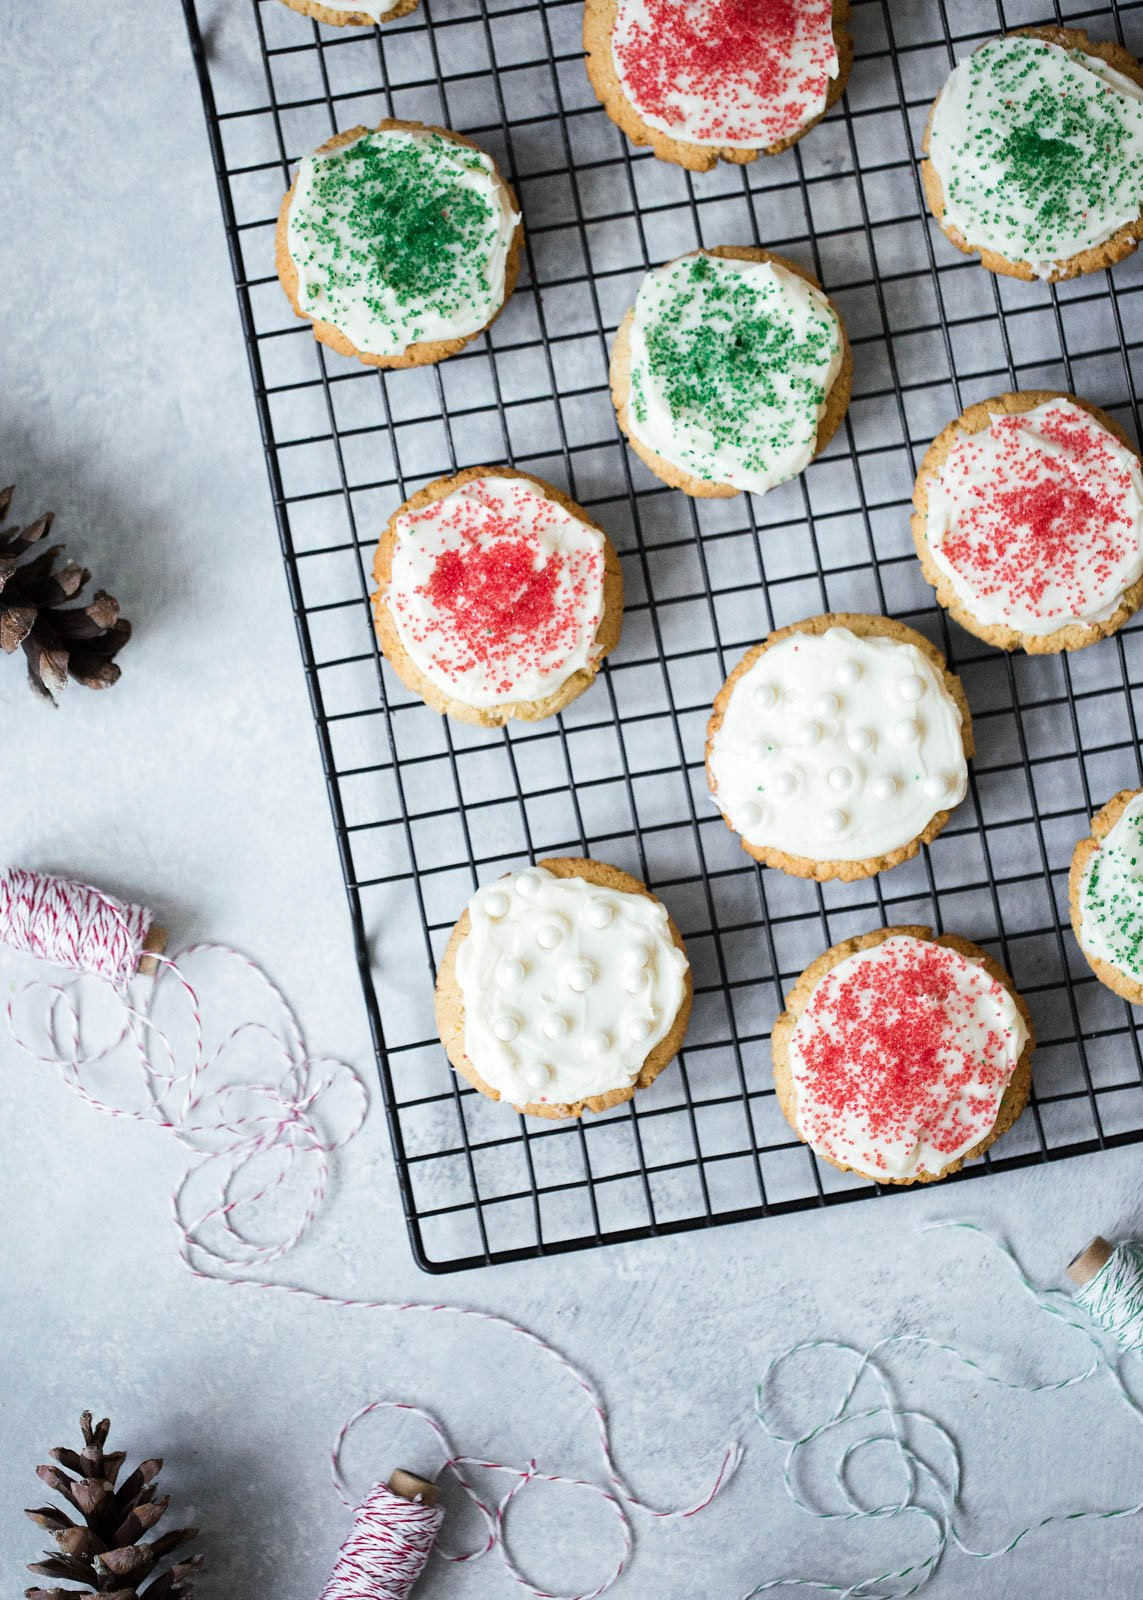 Big soft almond flour sugar cookies that taste just like the lofthouse version, except these are made with better for you ingredients. Both gluten free and paleo too (if you leave off the frosting!). These are UNREAL.